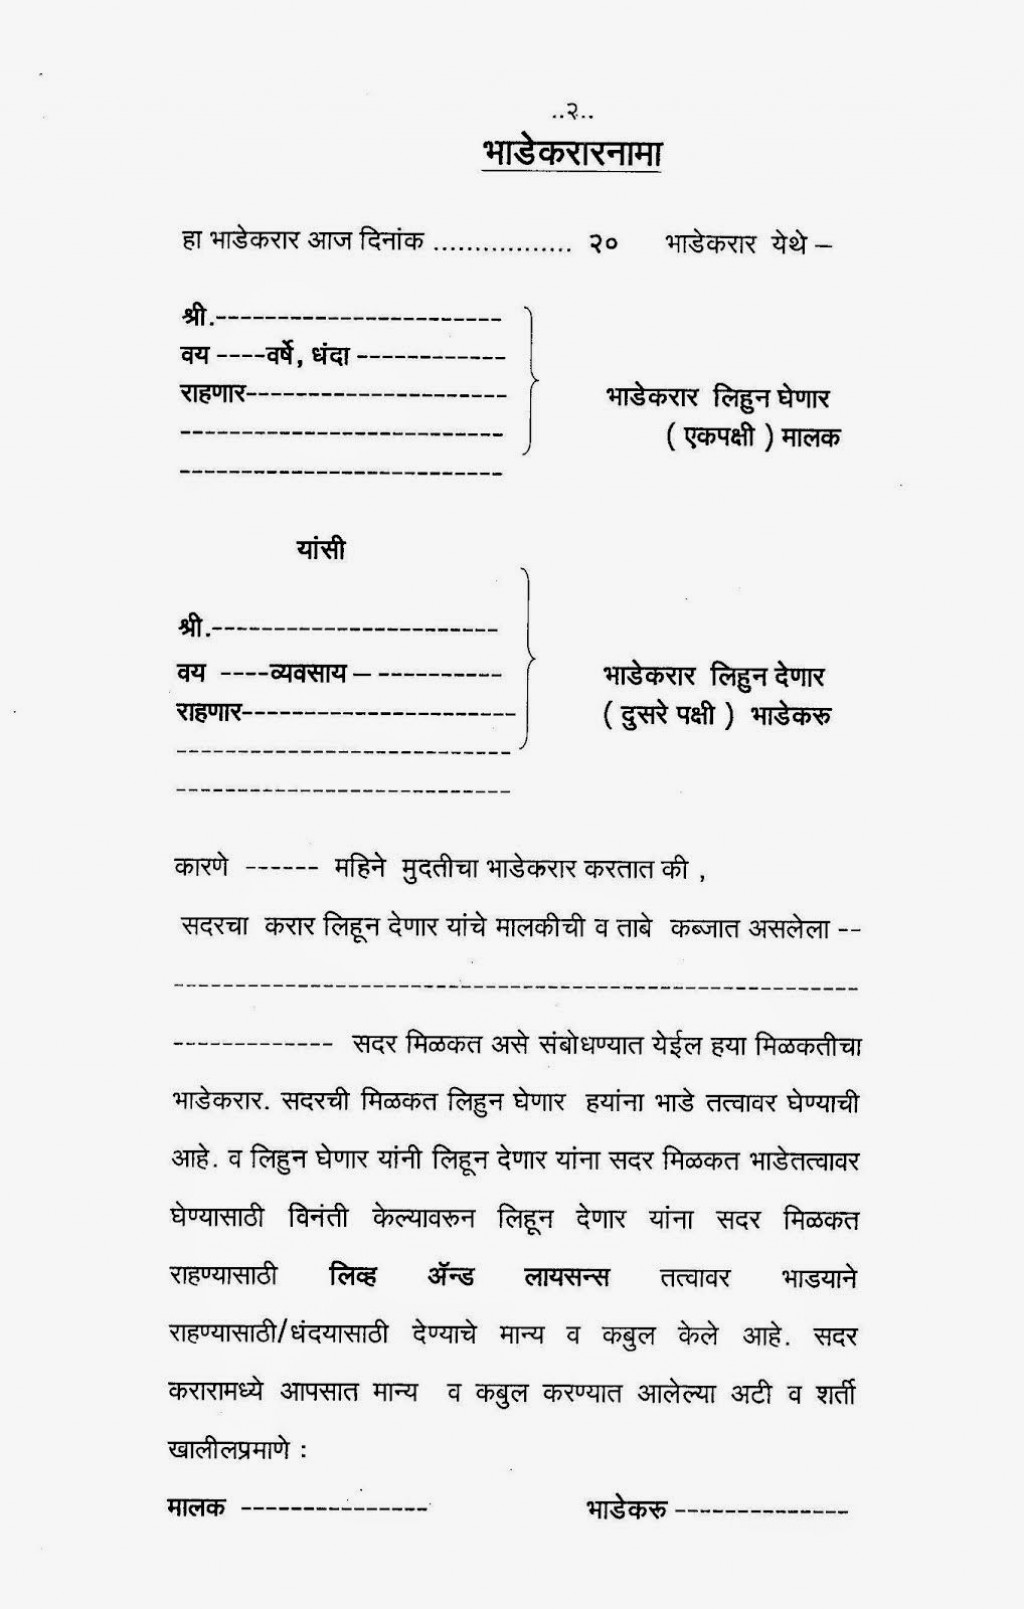 006 Fearsome Room Rent Agreement Format In Hindi Pdf Concept Large